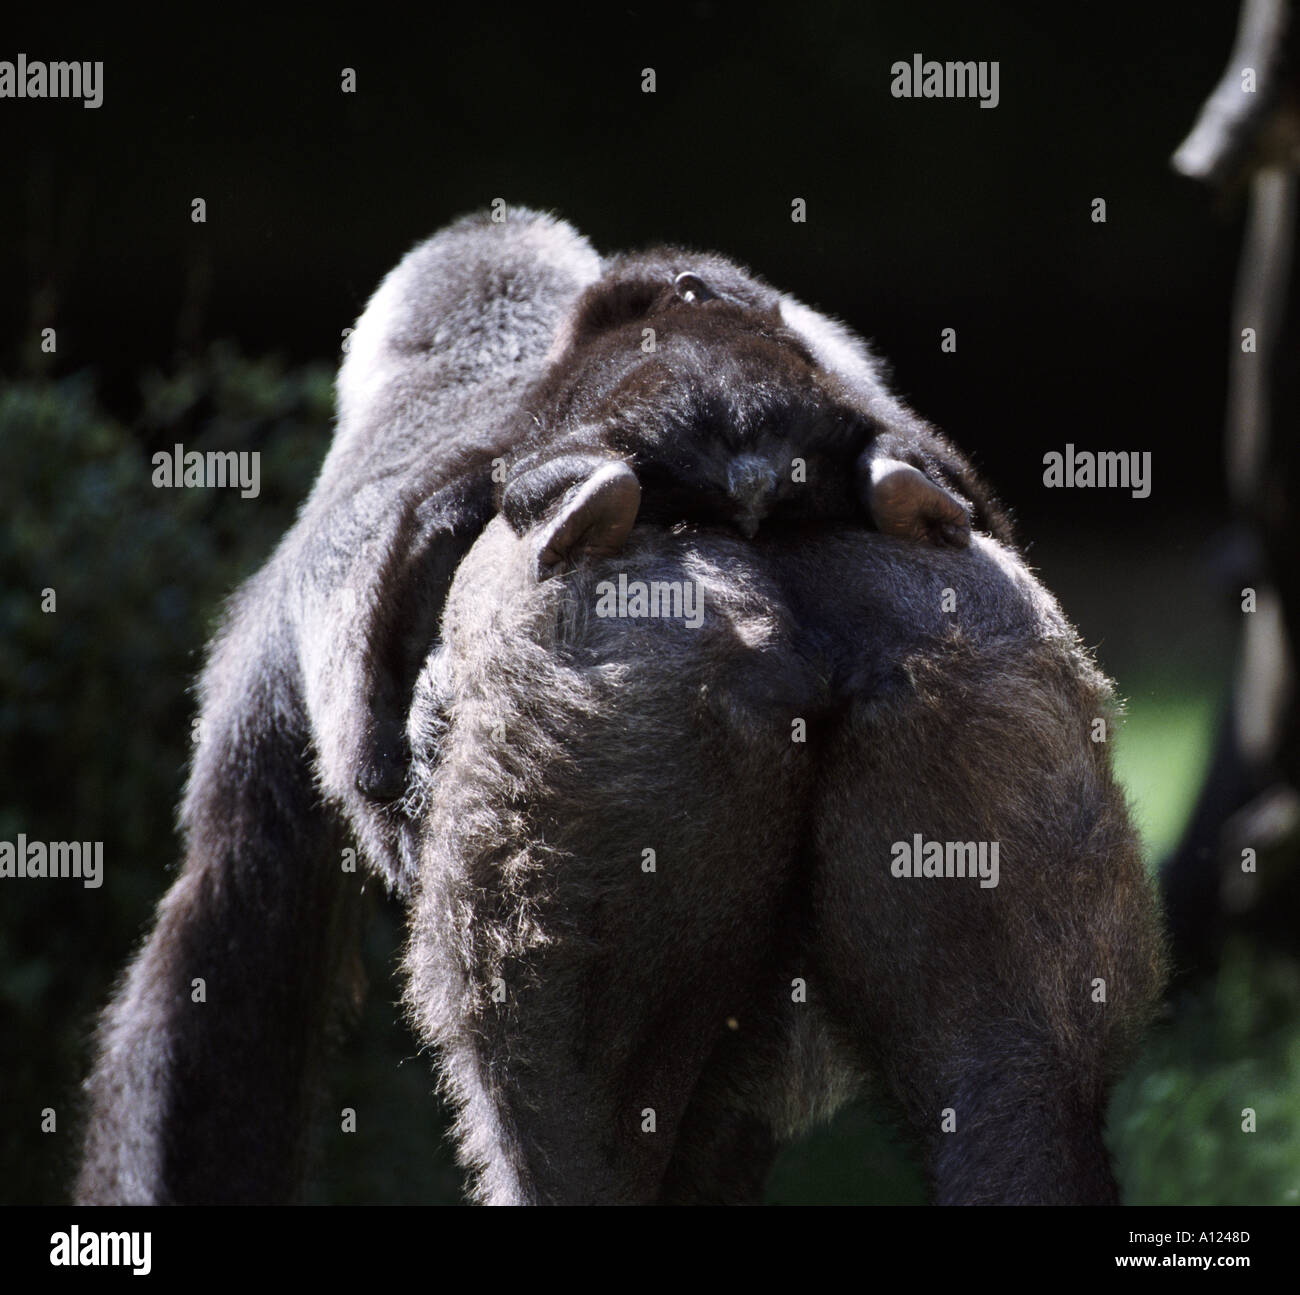 Lowland gorilla mother and baby - Stock Image